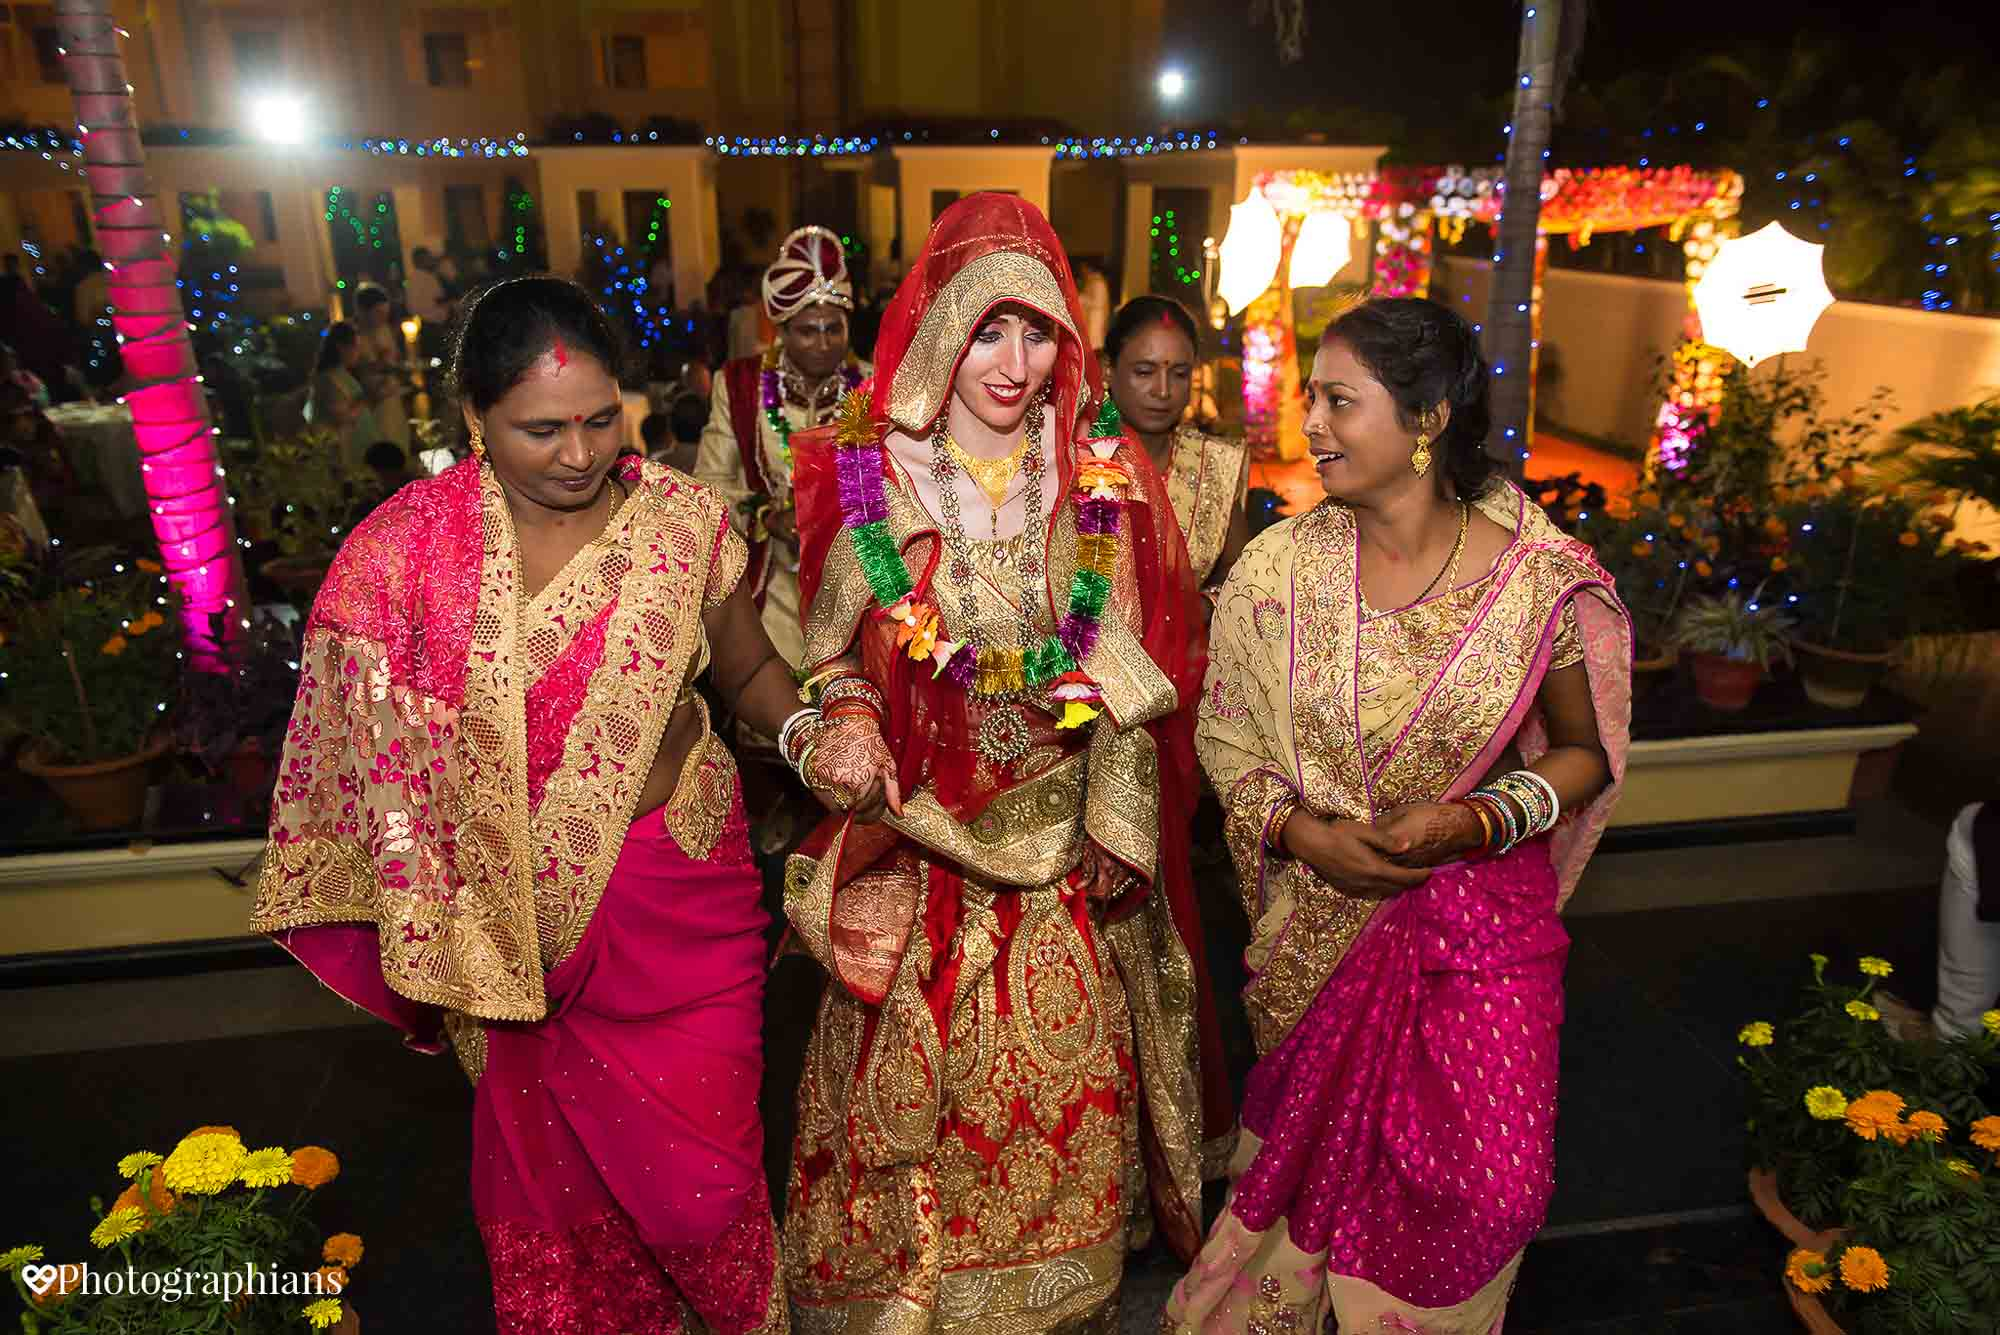 Destination_wedding_Odisa_Kolkata_254